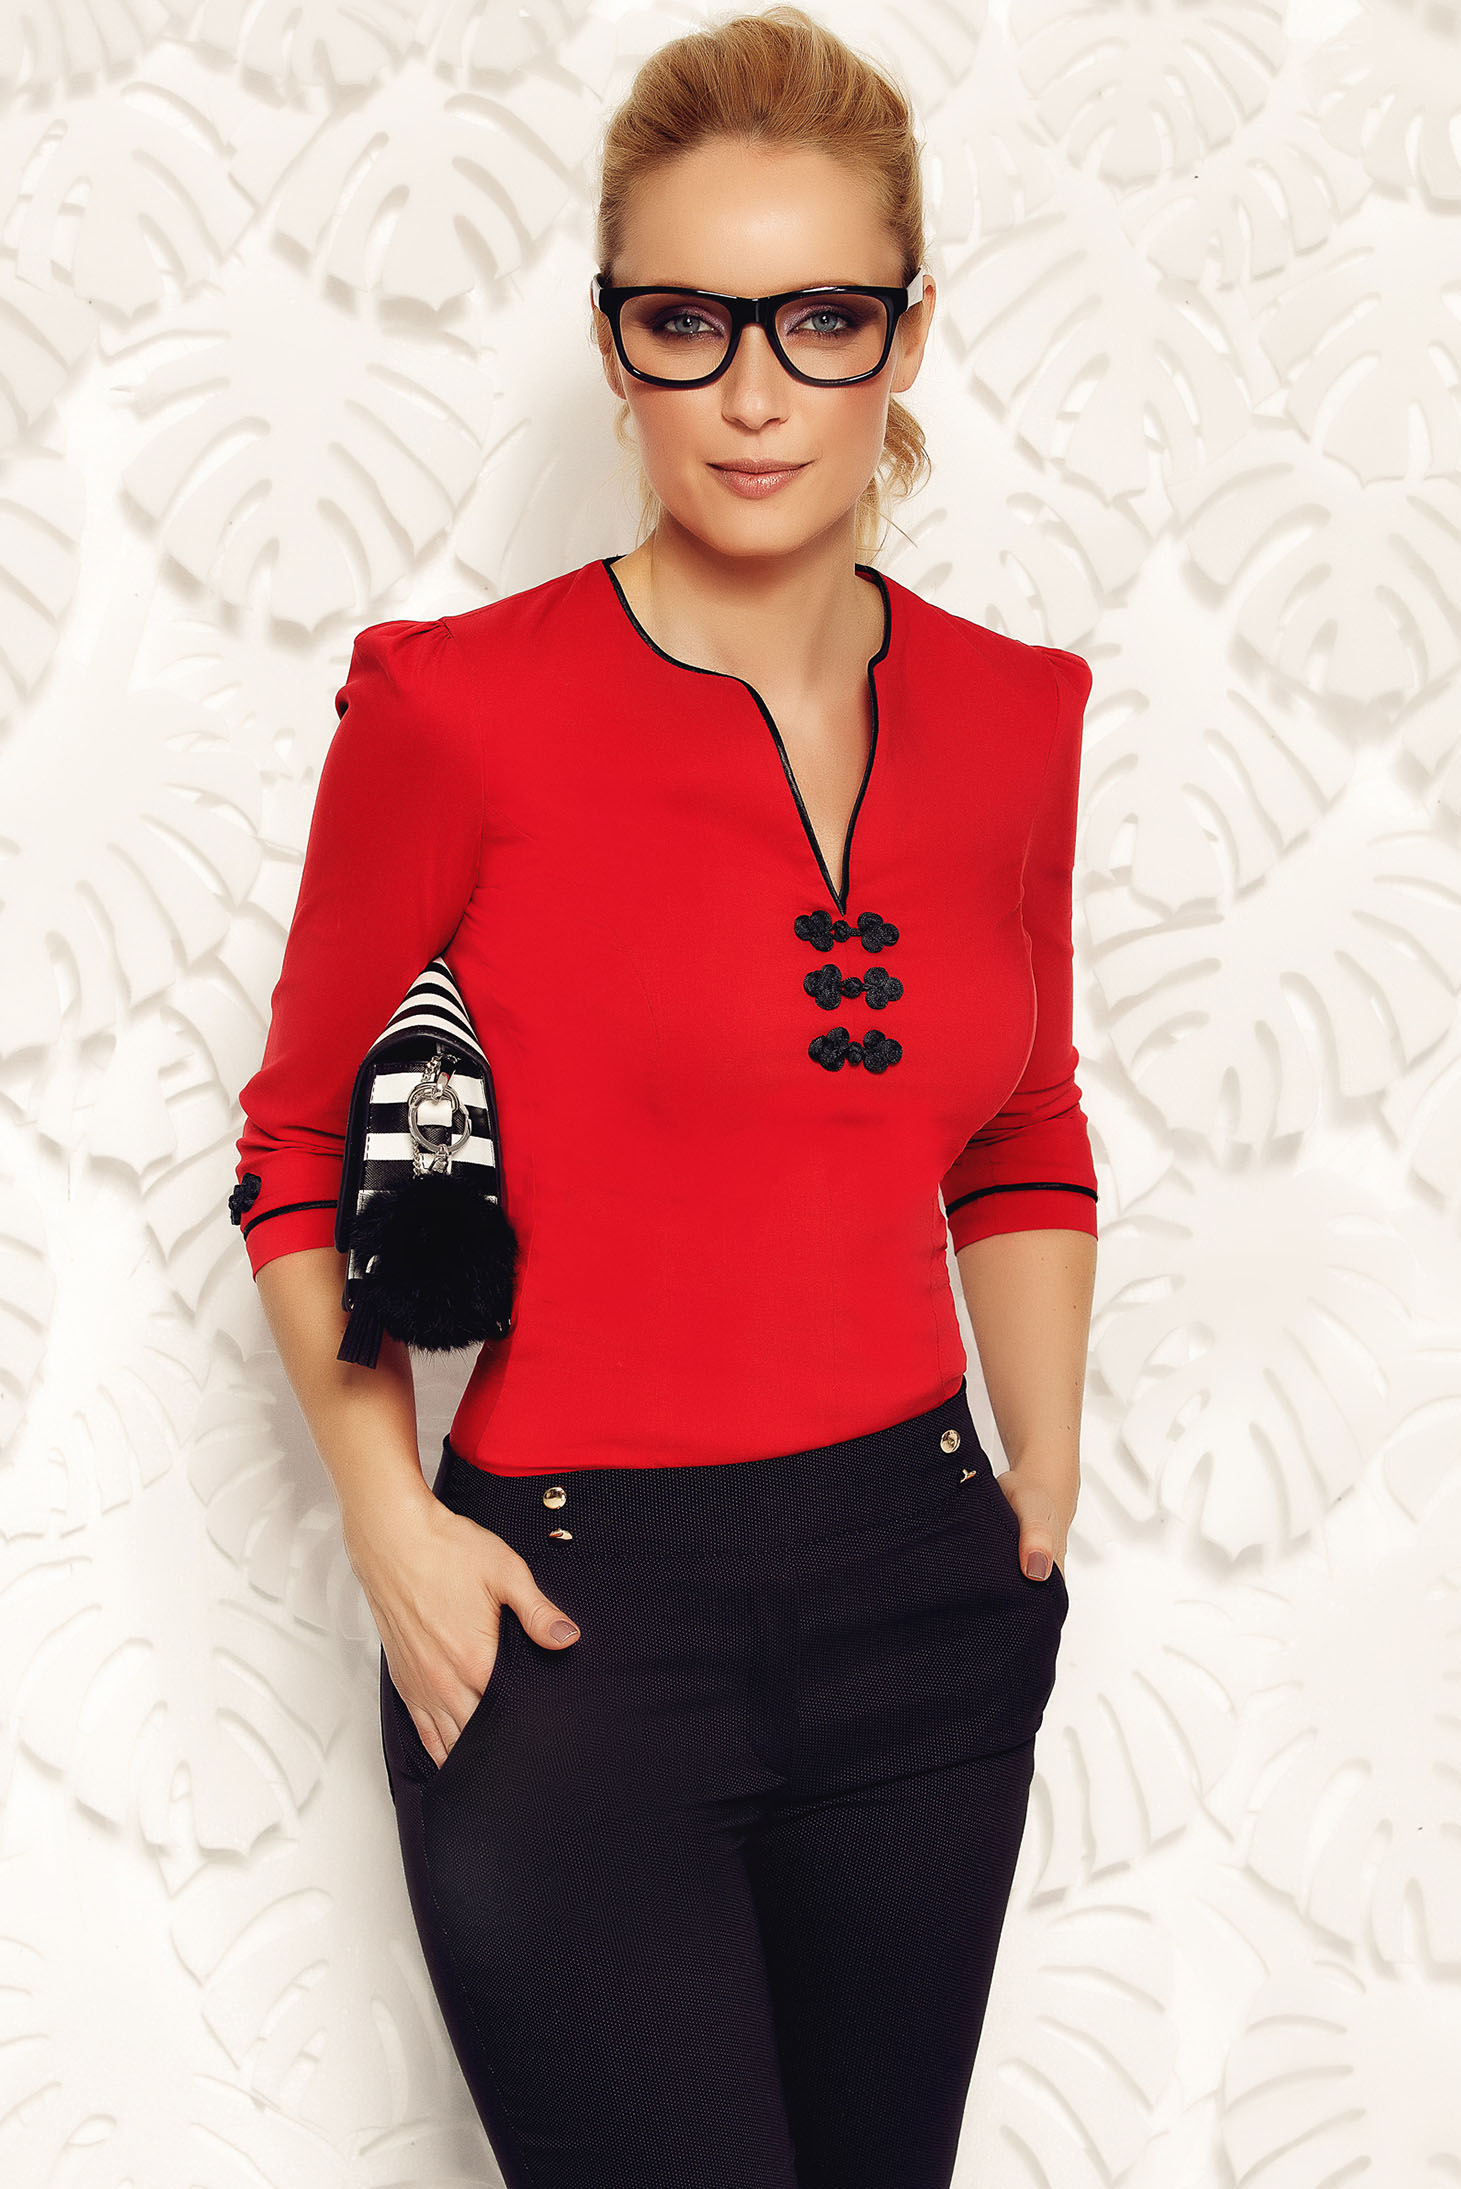 Fofy red women`s shirt office elastic cotton with embroidery details